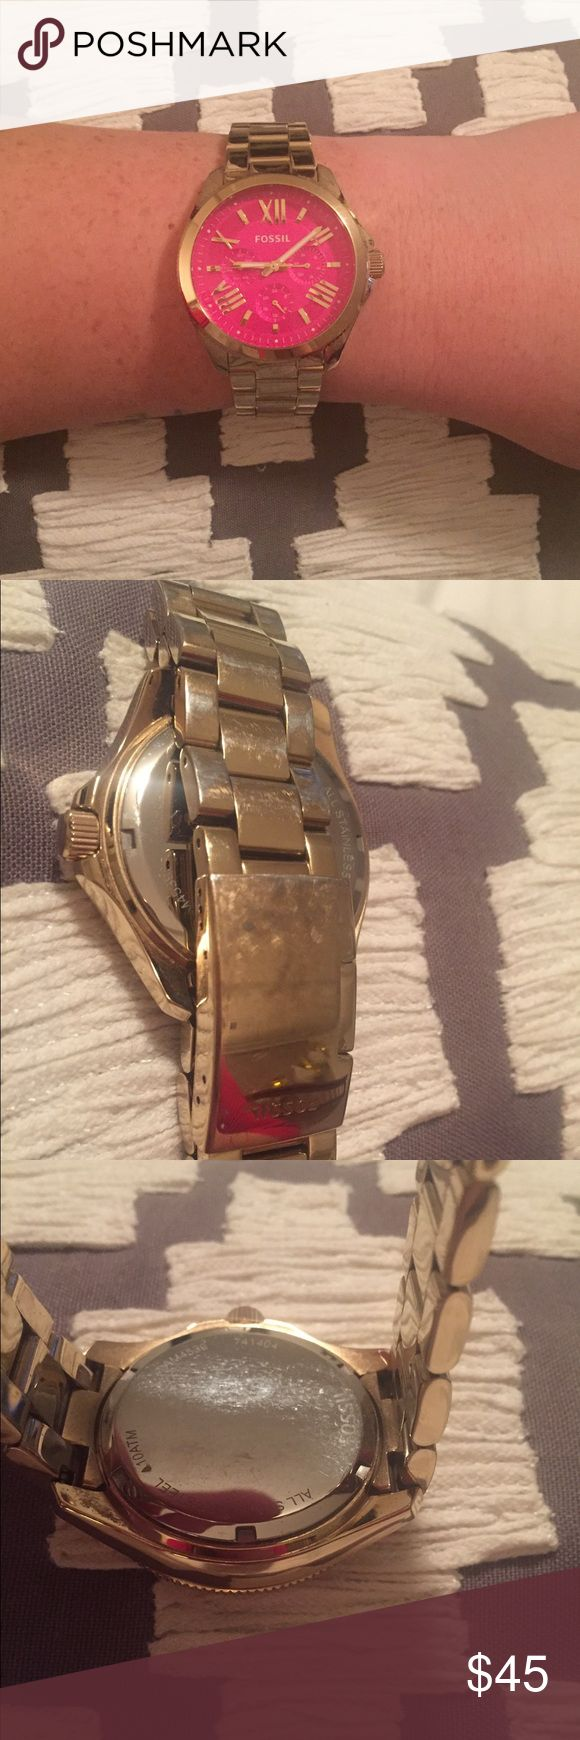 Fossil Watch I do not trade. Wear shown. Sold as is. Battery works. Fossil Accessories Watches